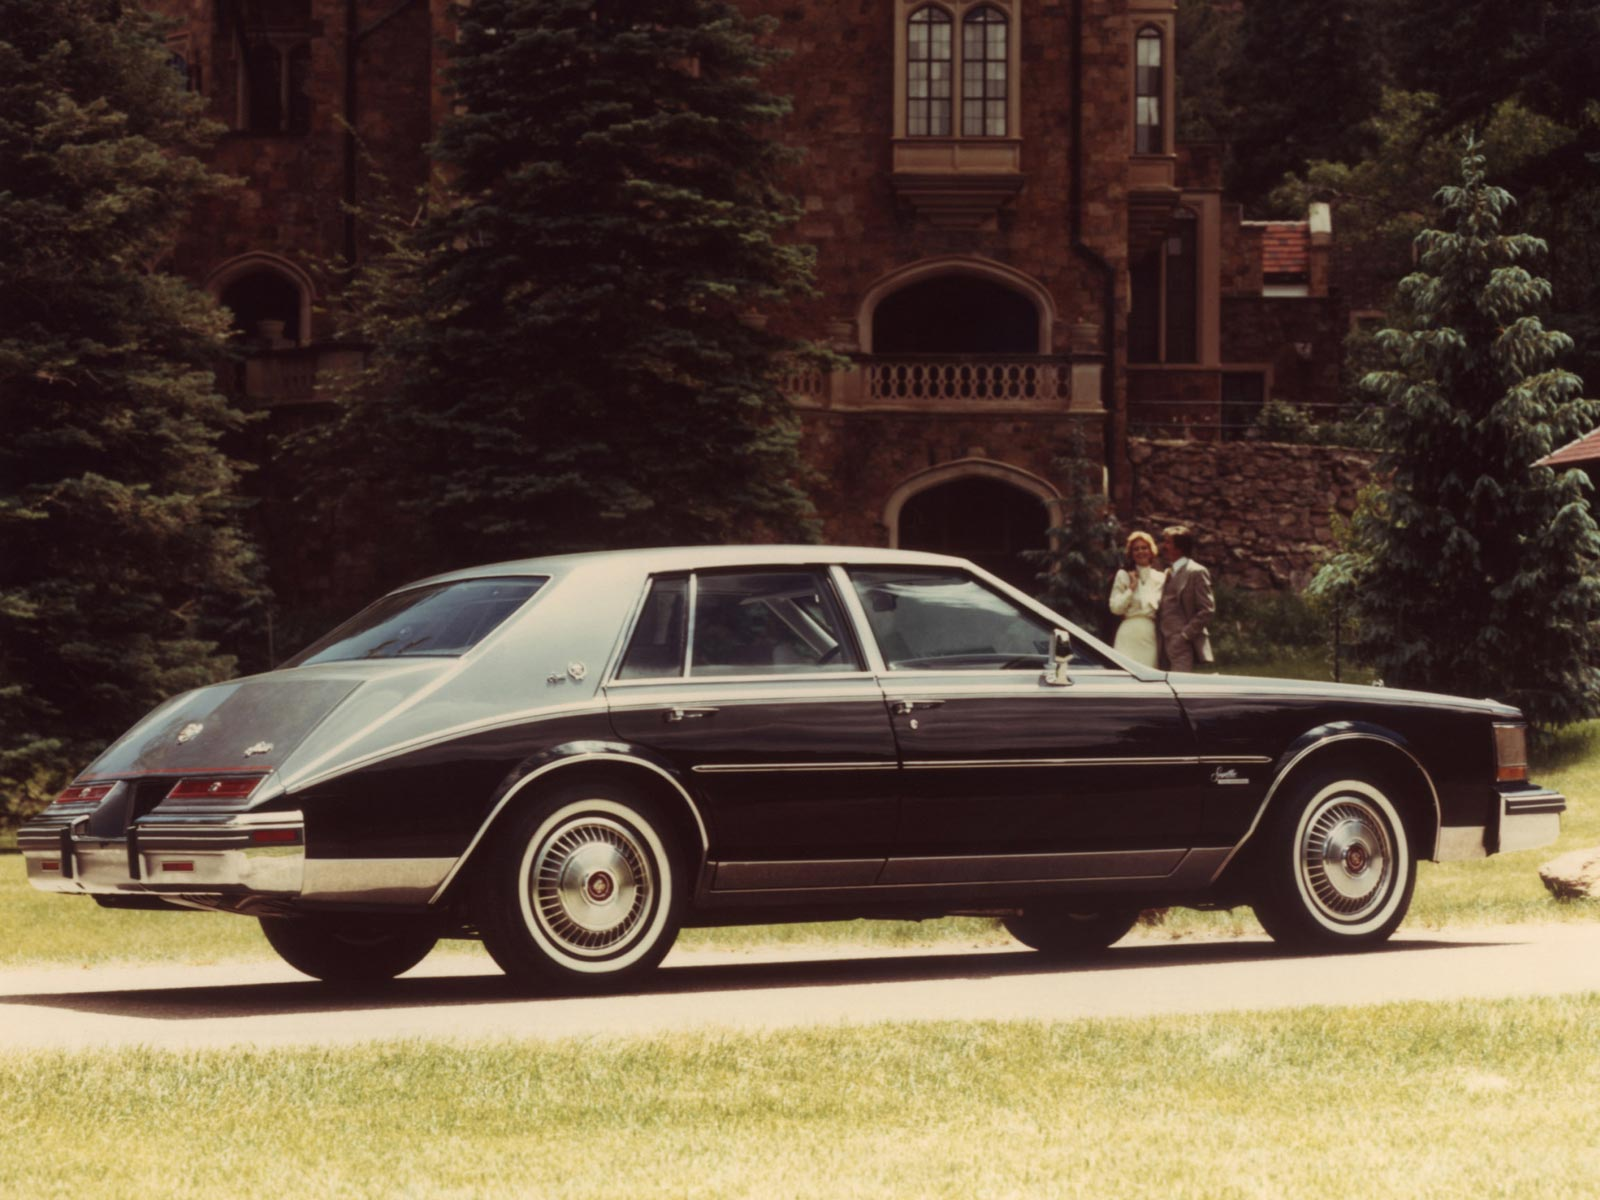 1980 Cadillac Deville Albany Ny Owned By Iconf4i Page 1